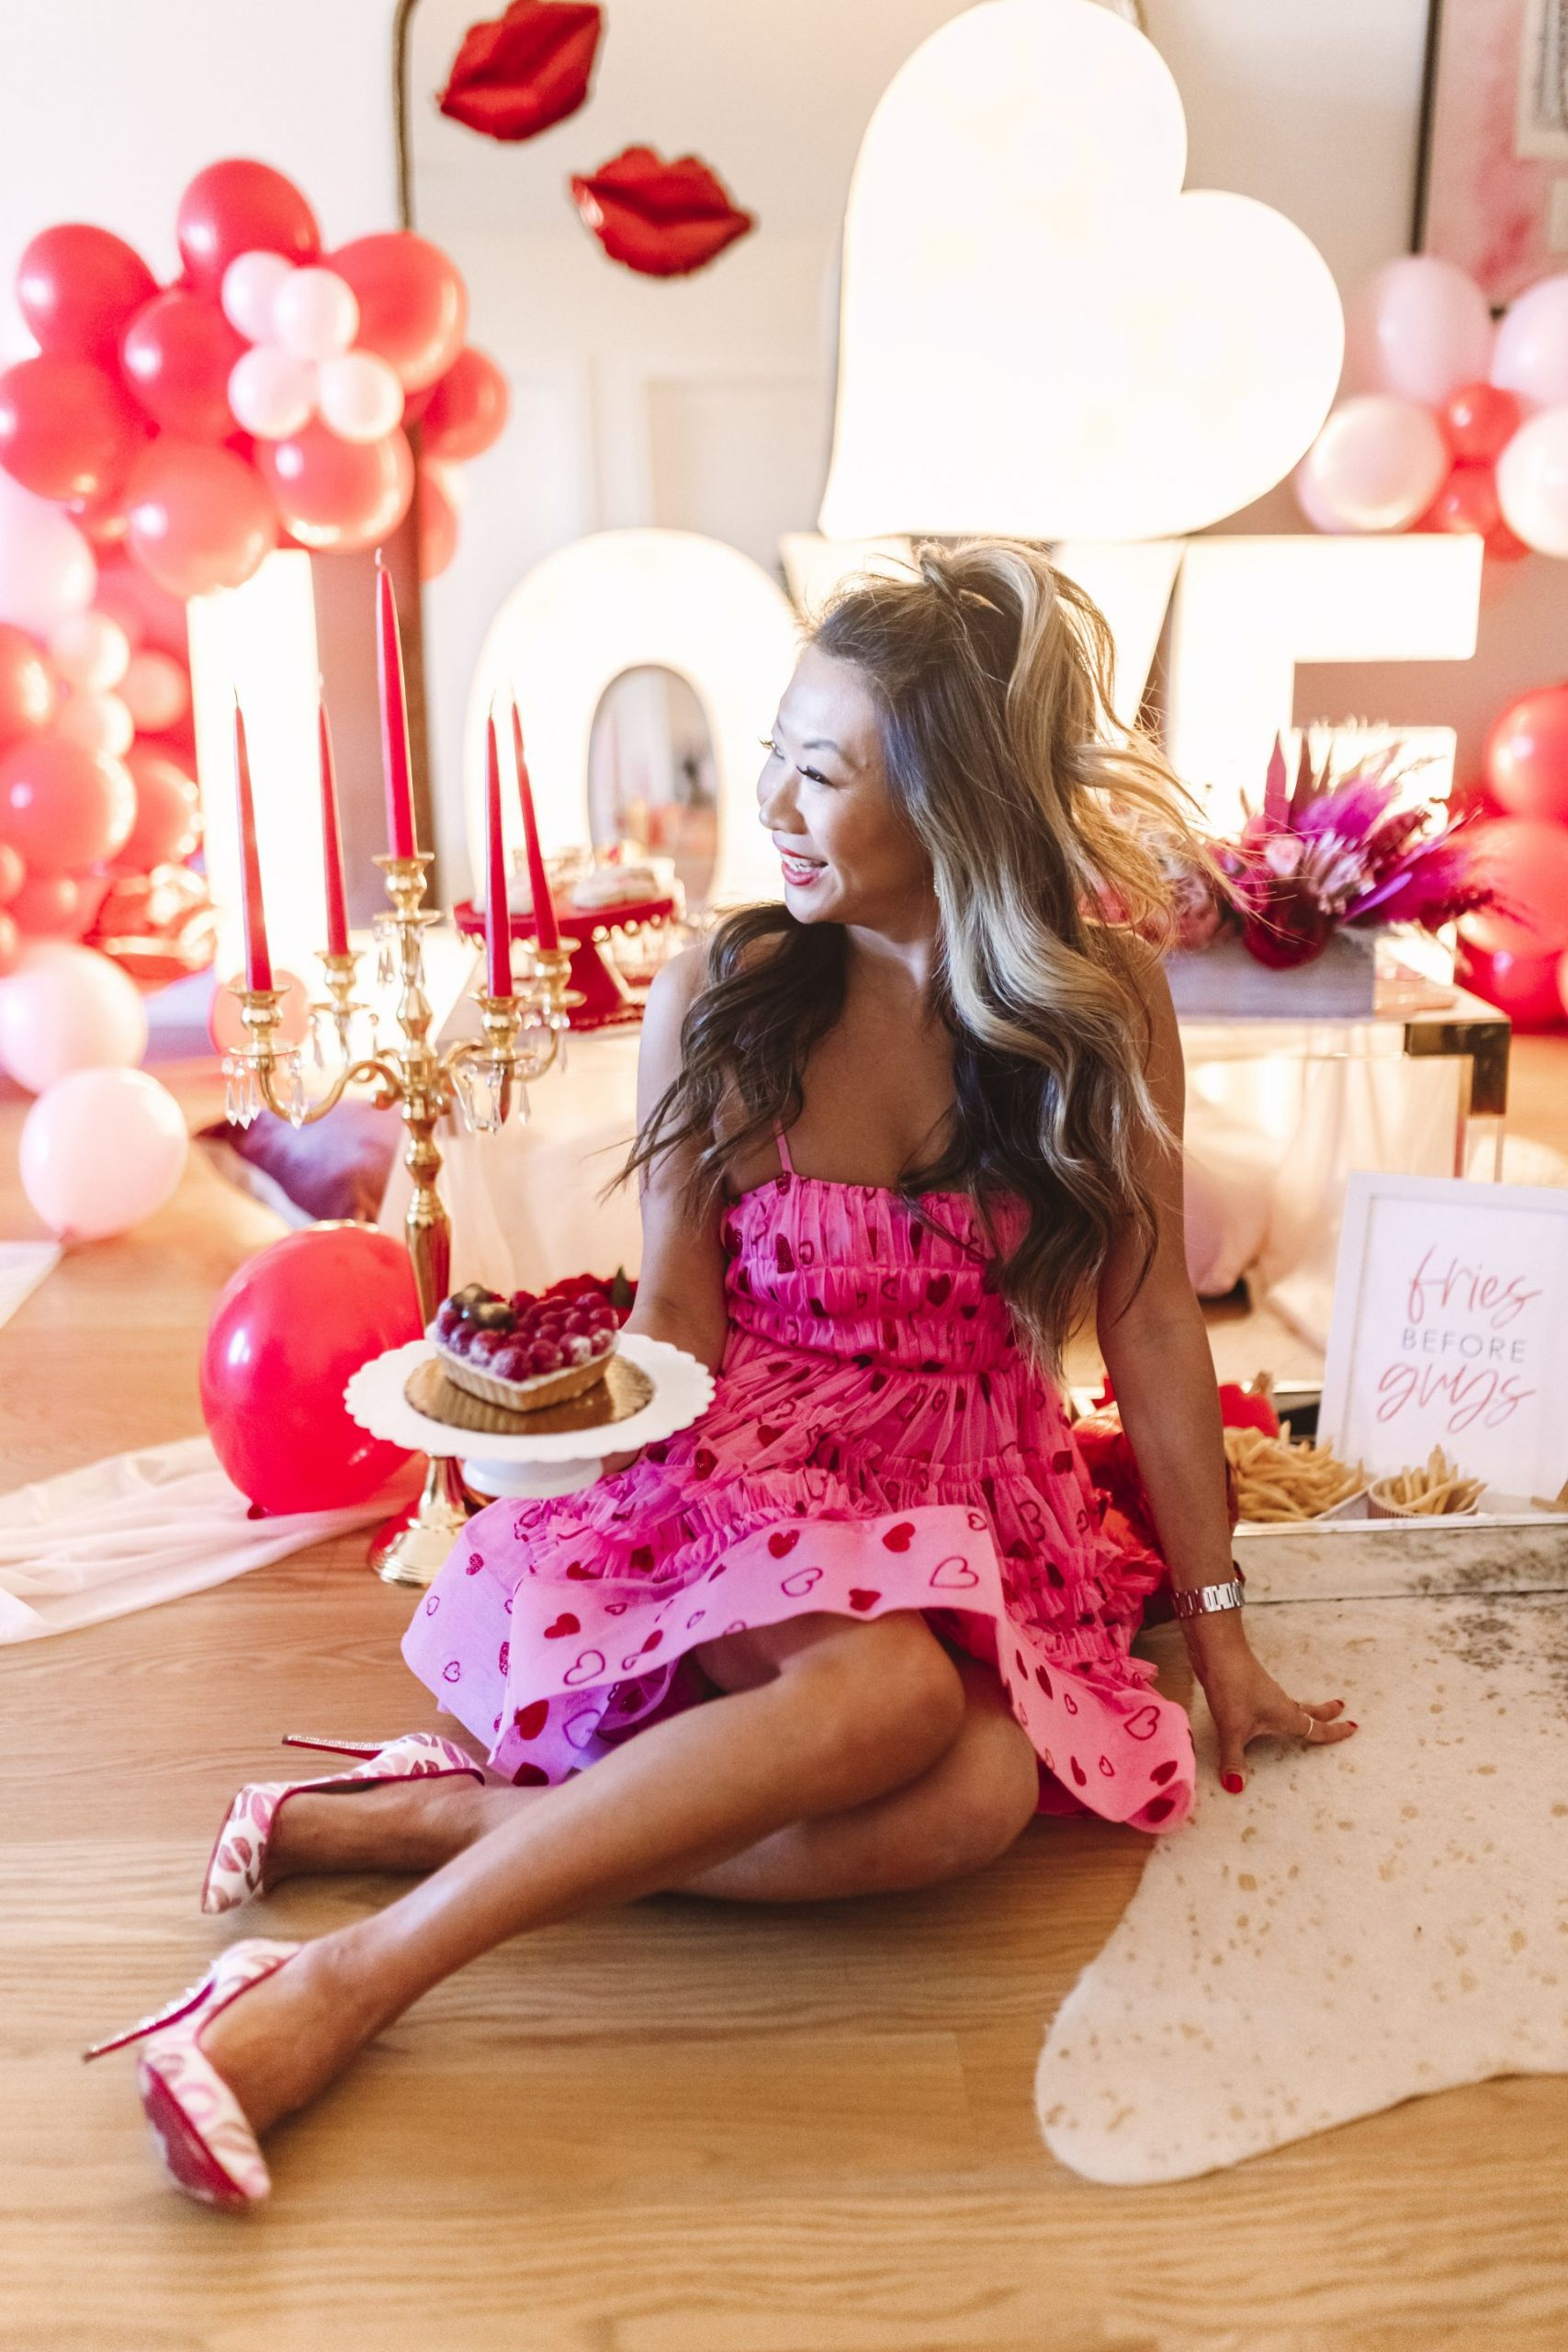 Valentine's Day style, pink vday dress, valentines day dress, galentines day dress, Glam Party Decor Ideas, Galentine's party decor, Valentine's day party decor, girls night party decor ideas, Vday party decorations, pink and red party theme, girly partytheme decor, love party theme decor,valentines day party ideas,valentines day party ideas for adults, light up marquee letters for parties, Red Soles and Red Wine, Jennifer Worman, AlphaLit Chicago